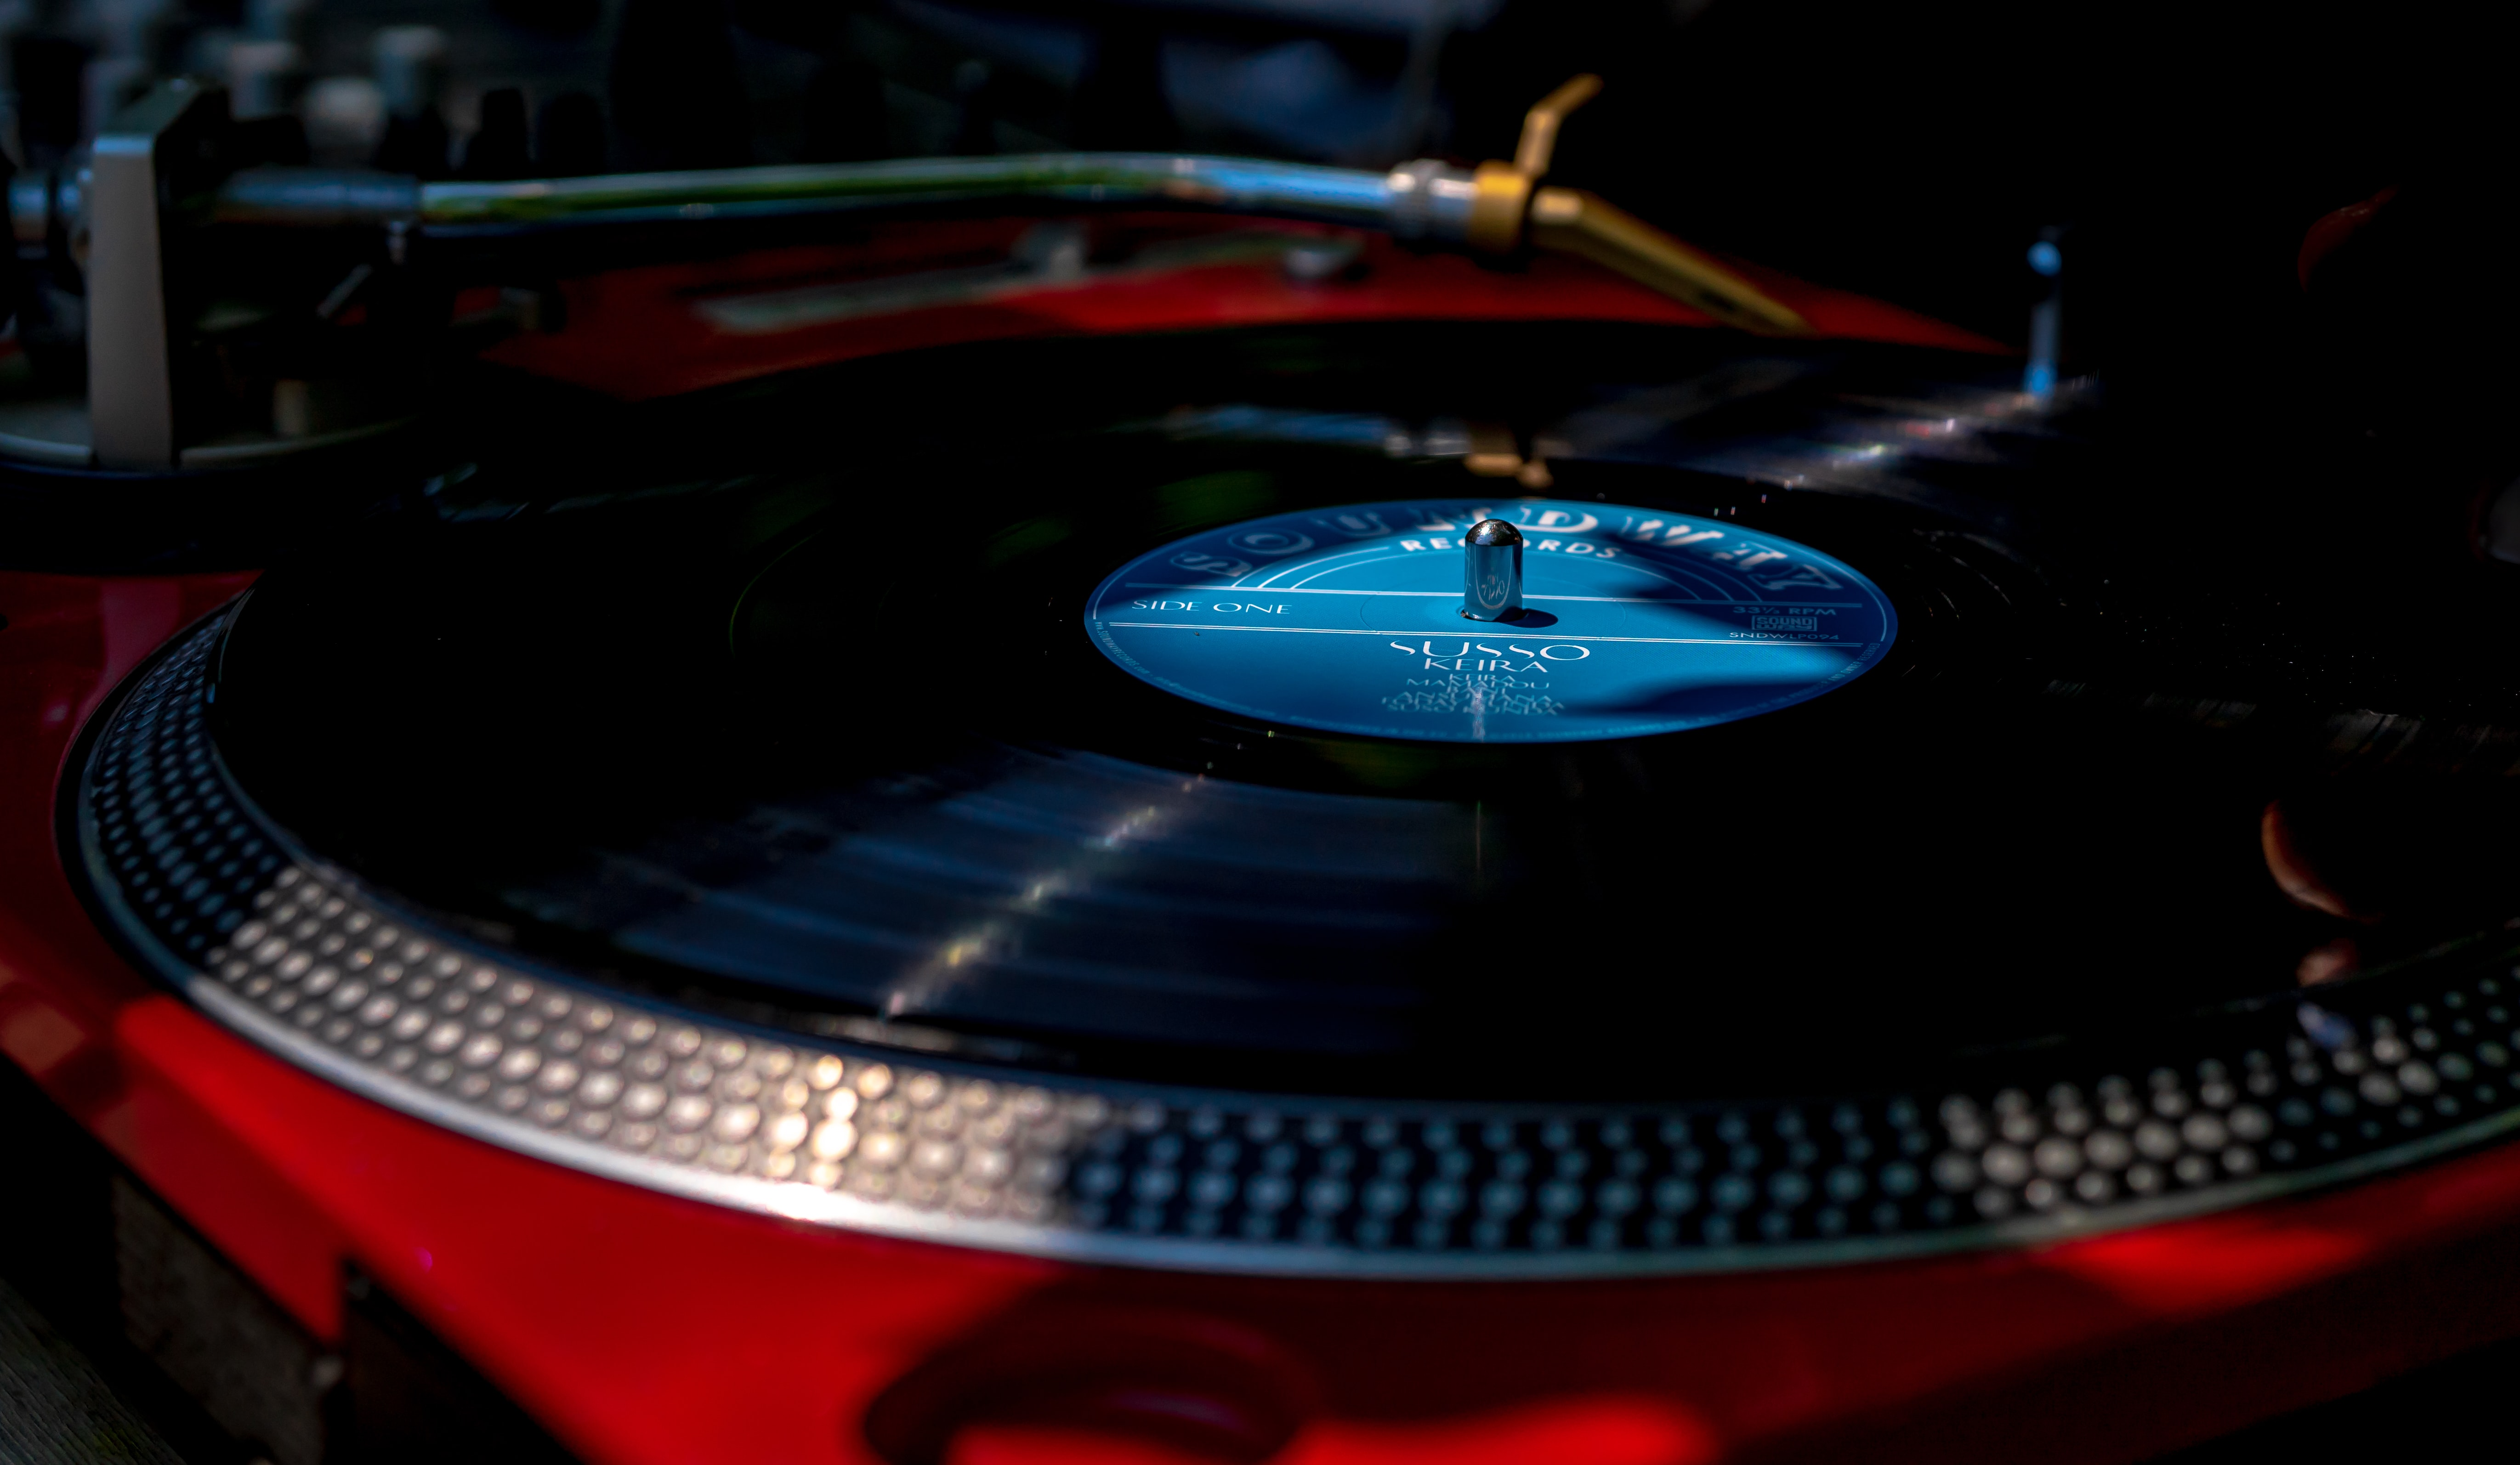 closeup photography of black and red turntable